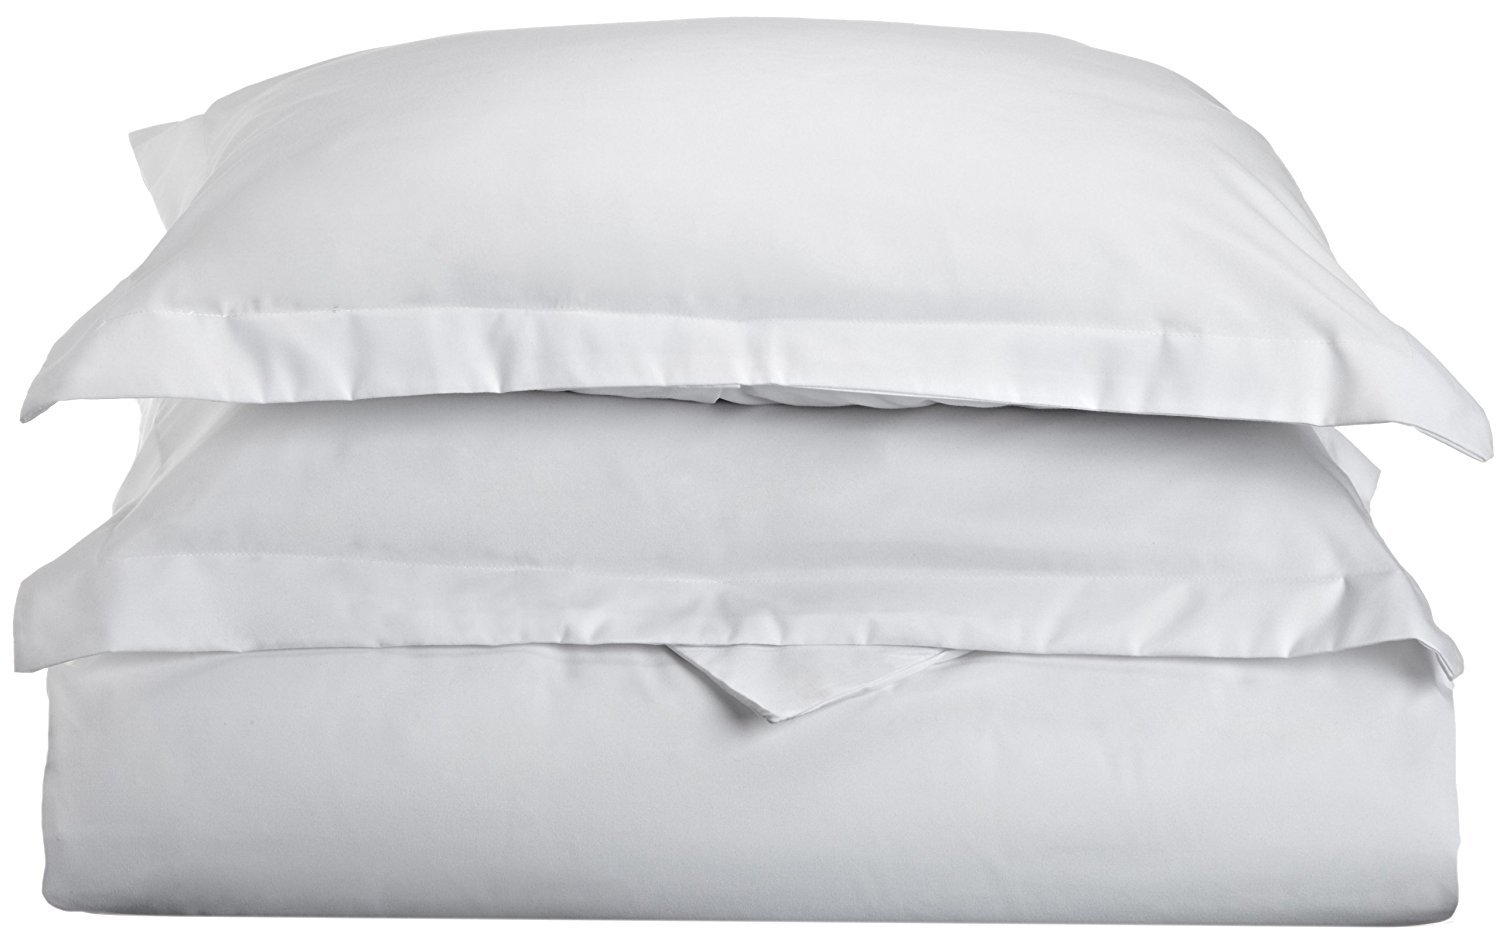 Home Decore Linen Luxurious Hotel Quality 700 Thread Count Egyptian Cotton Full 4 Piece Sheet Set fits up to 21 Inch mattresses ( Deep Pocket ), Solid White